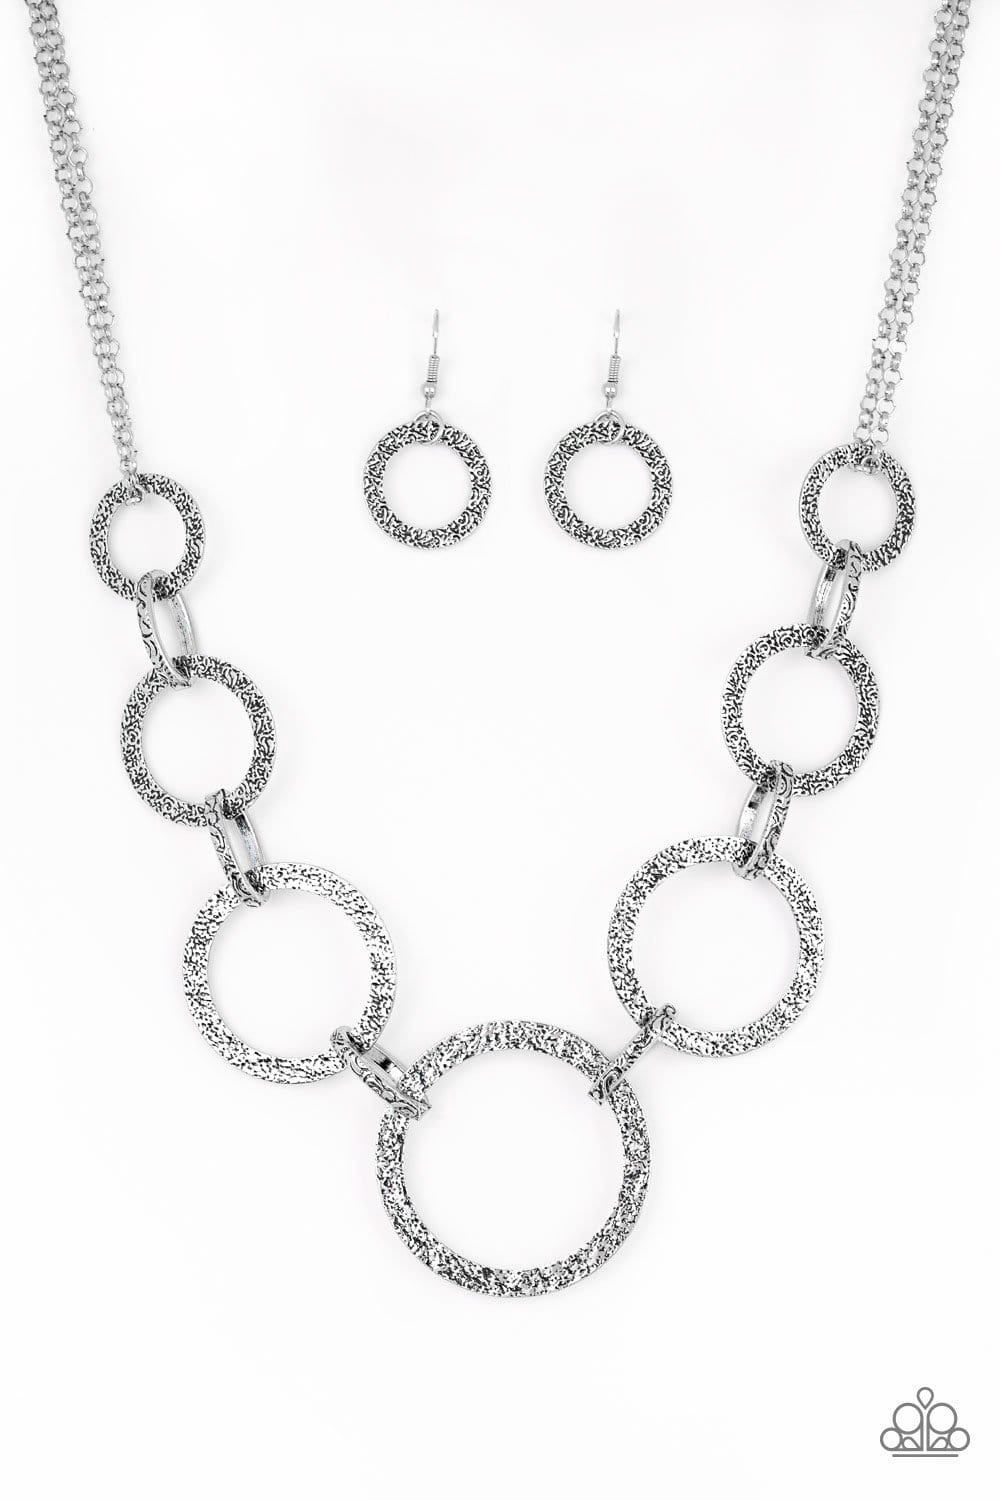 City Circus - Silver: Paparazzi Accessories - Jewels N' Thingz Boutique